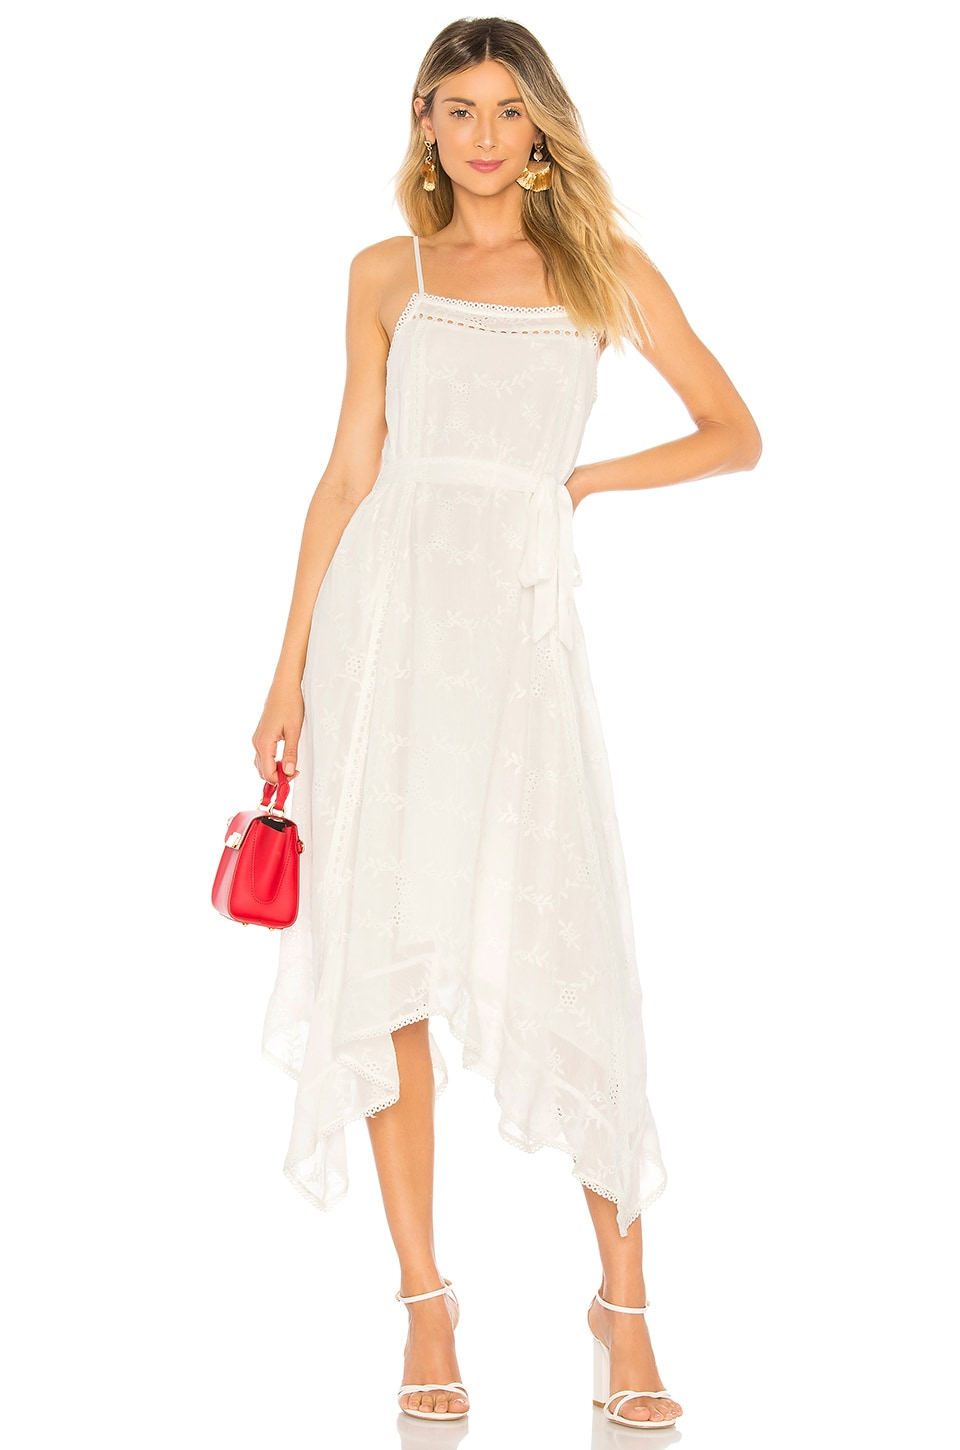 Tularosa Maxine Dress in Ivory